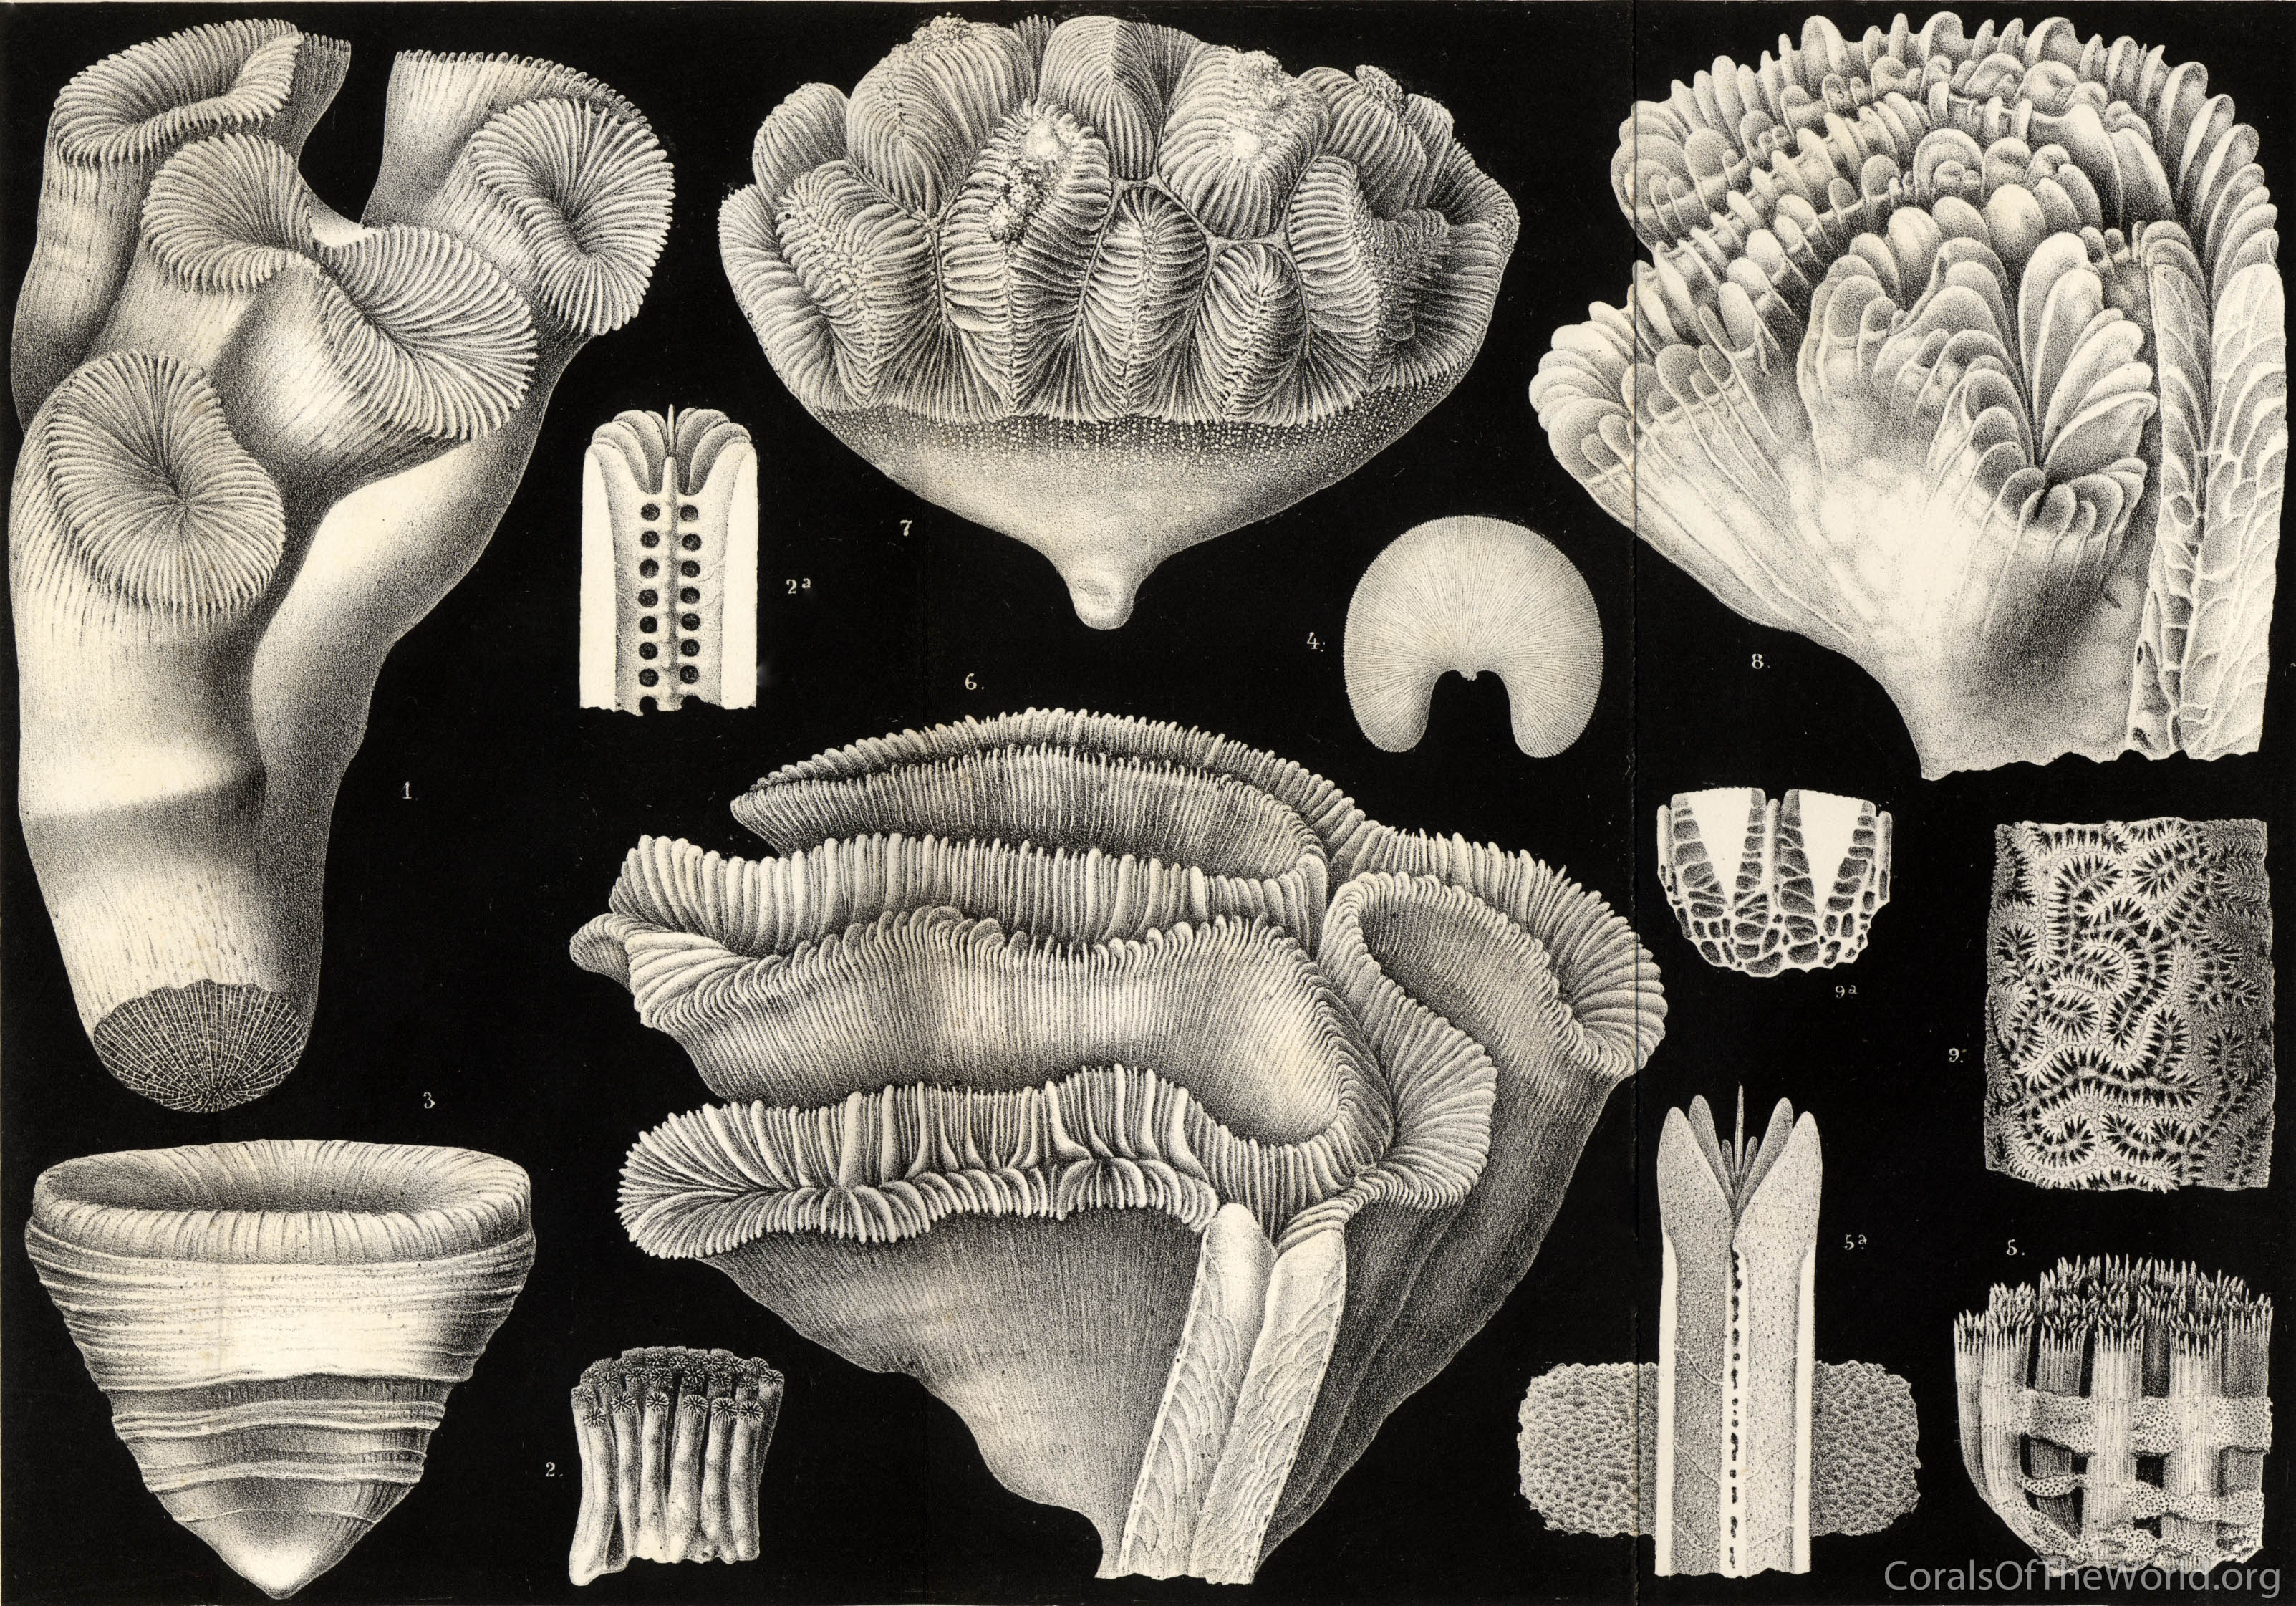 Quality artwork of corals